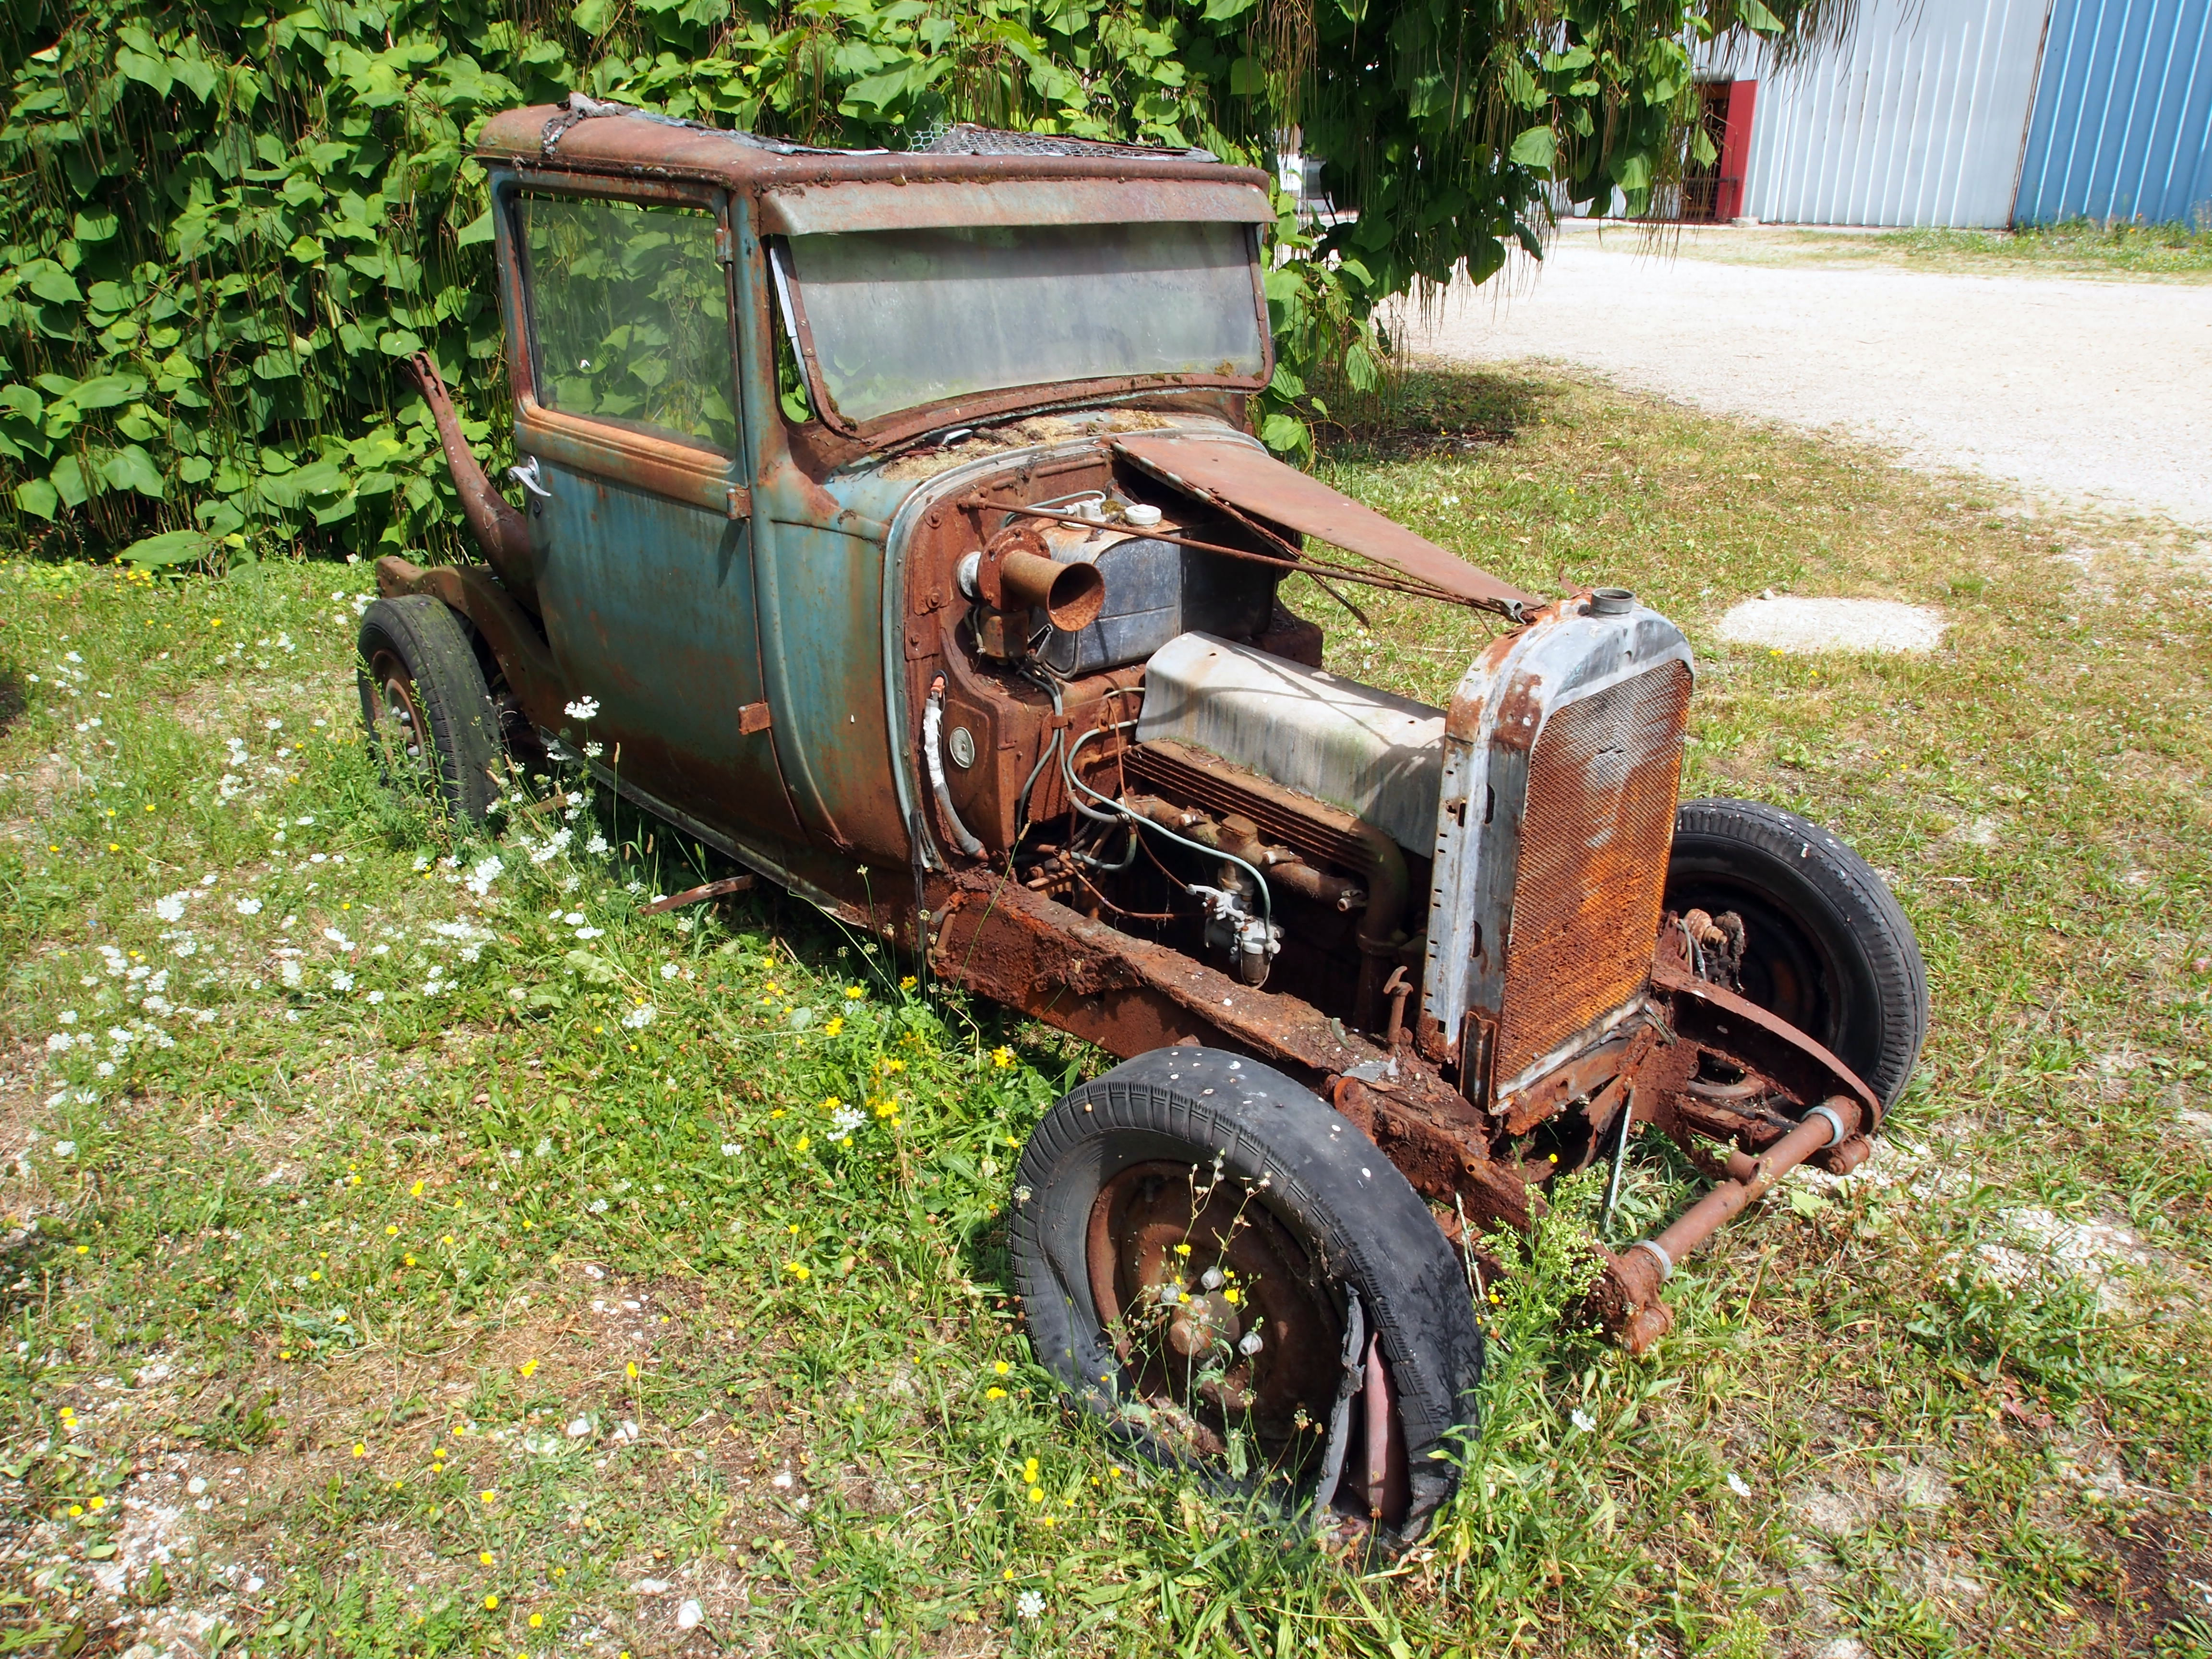 File:Old vehicle at the yard of the Automobile museum Reims pic4.JPG ...